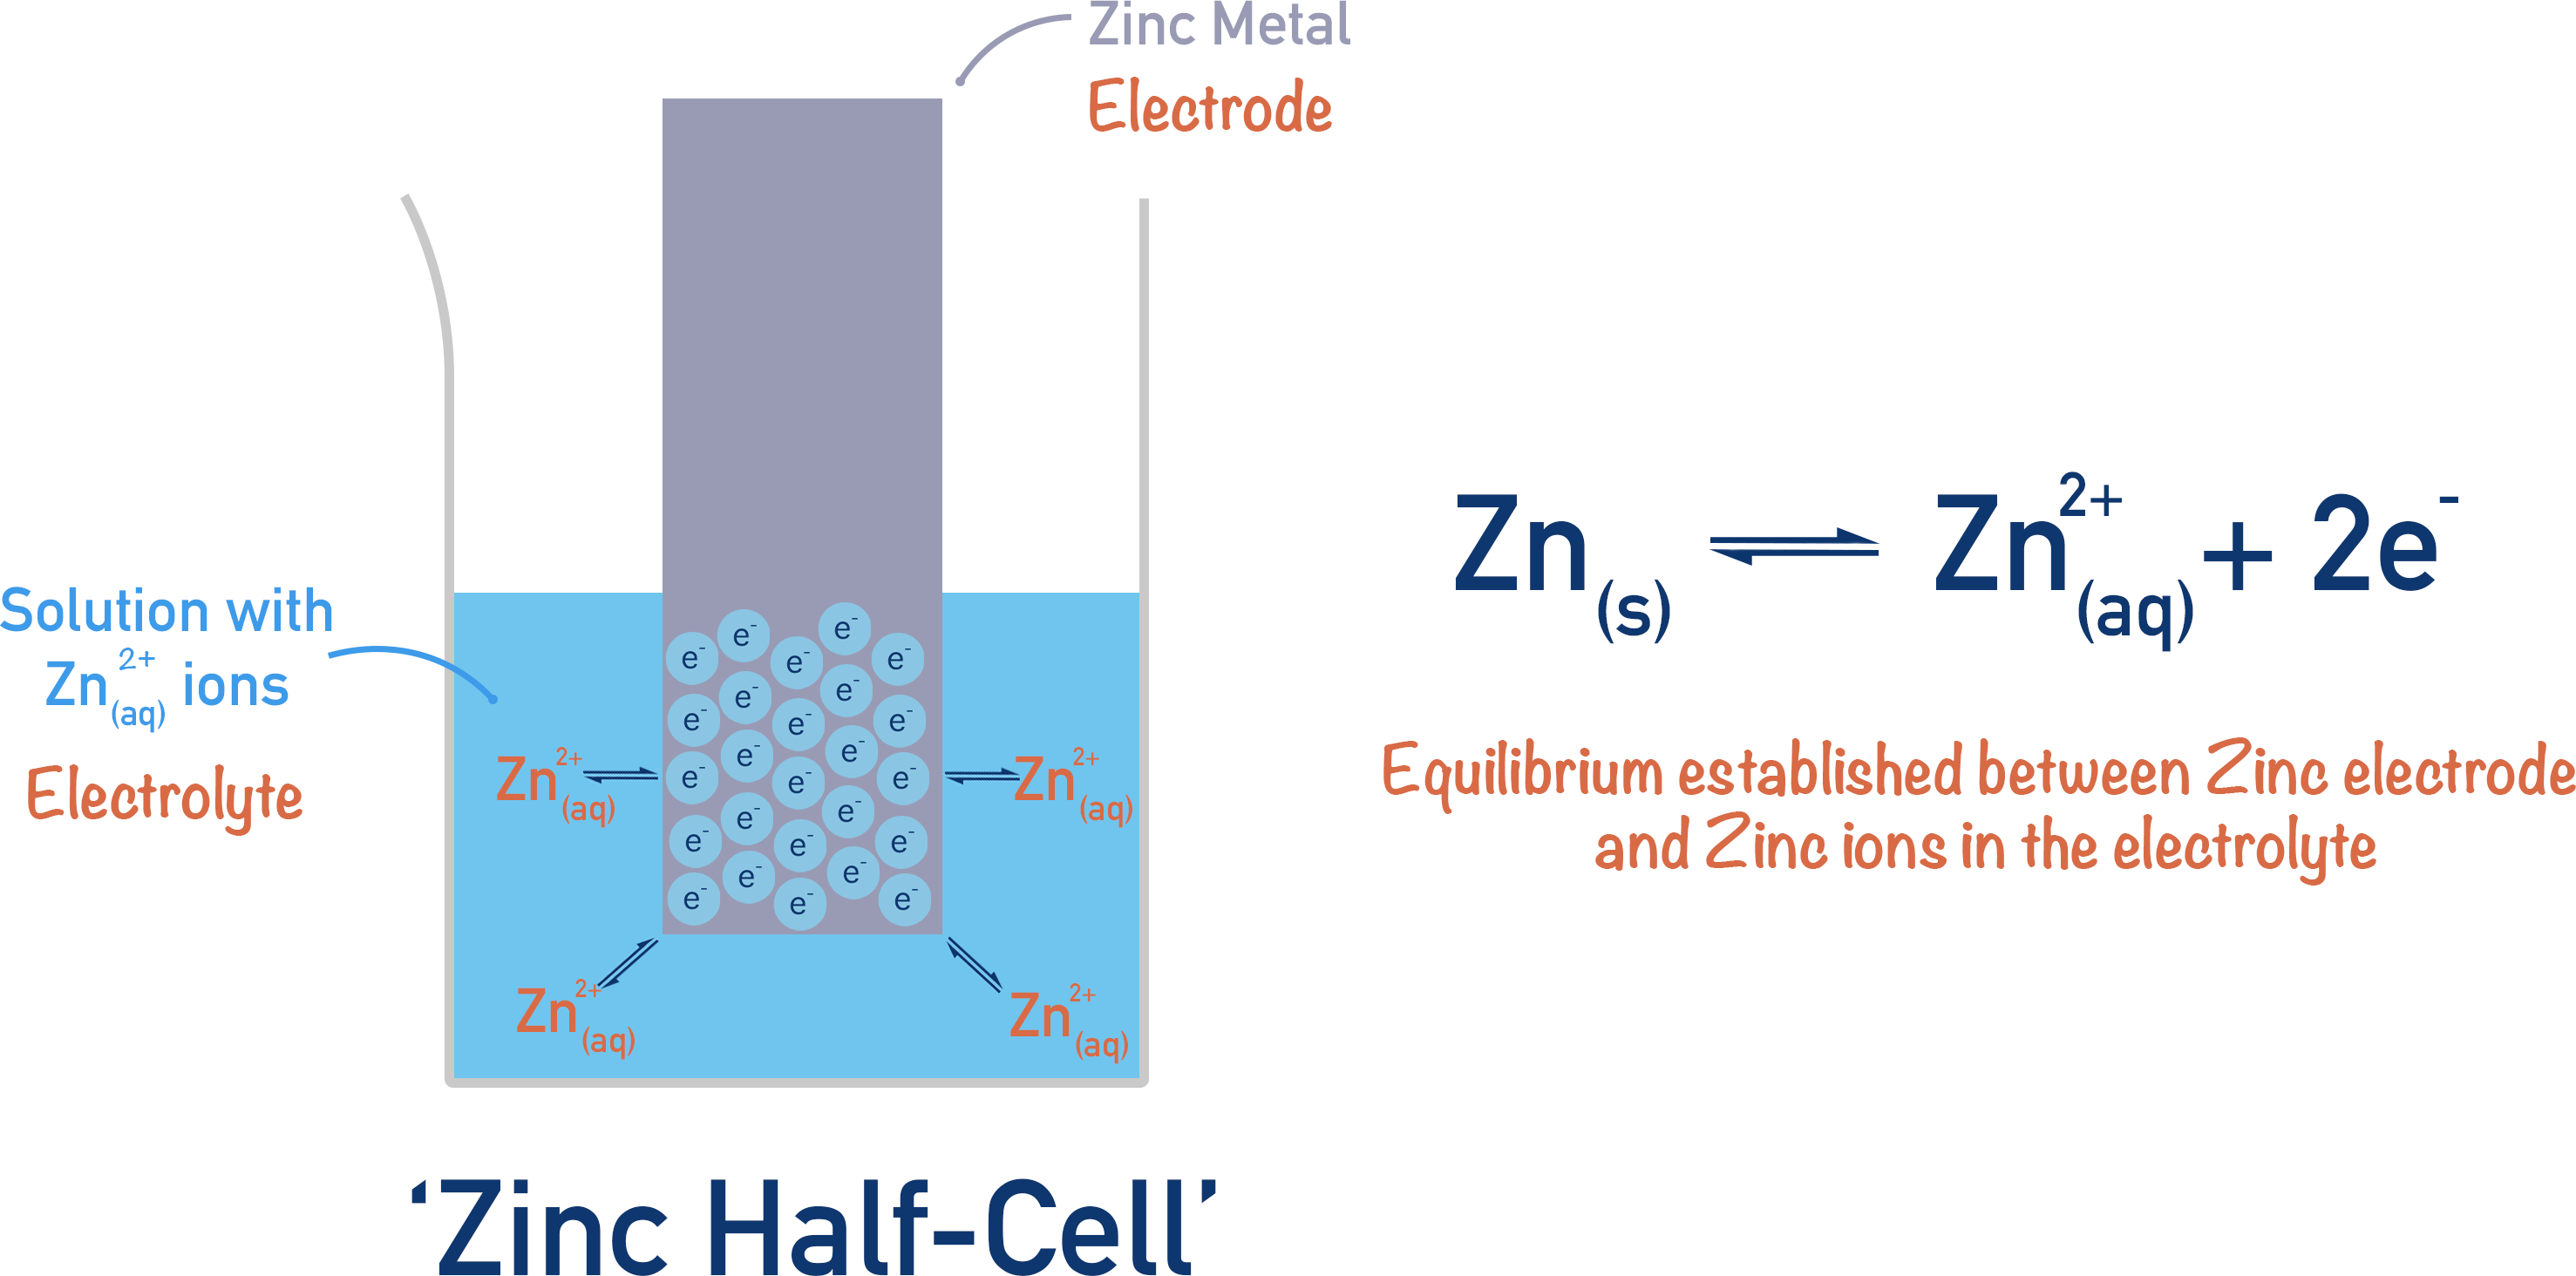 zinc half cell electrochemistry oxidation reduction equilibrium electrode potential a-level chemistry